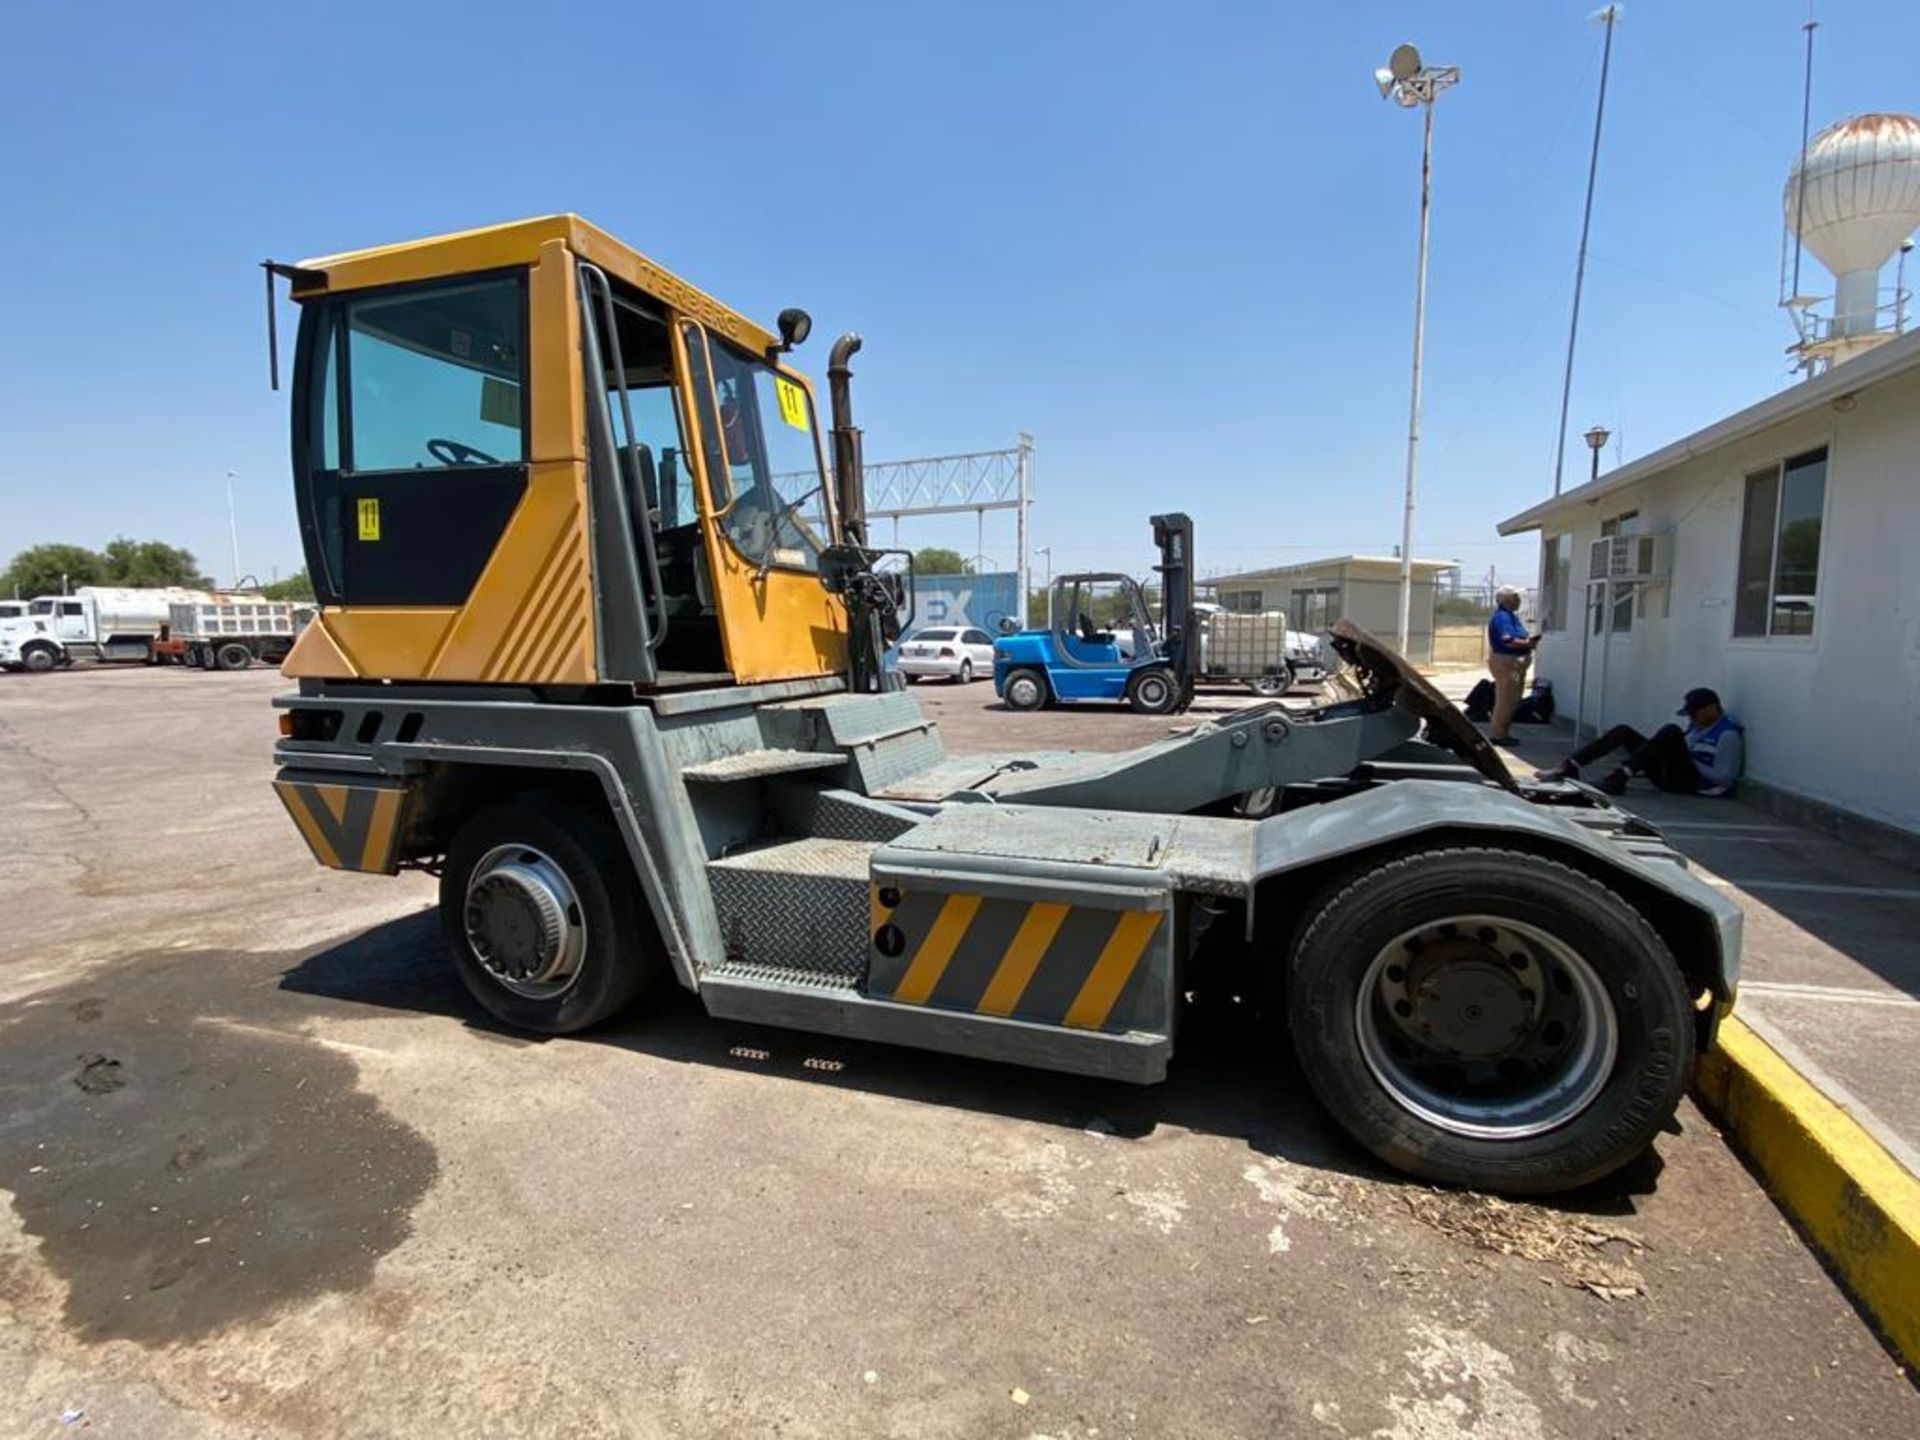 Terberg Capacity 2002 Terminal Tractor, automatic transmission - Image 18 of 57